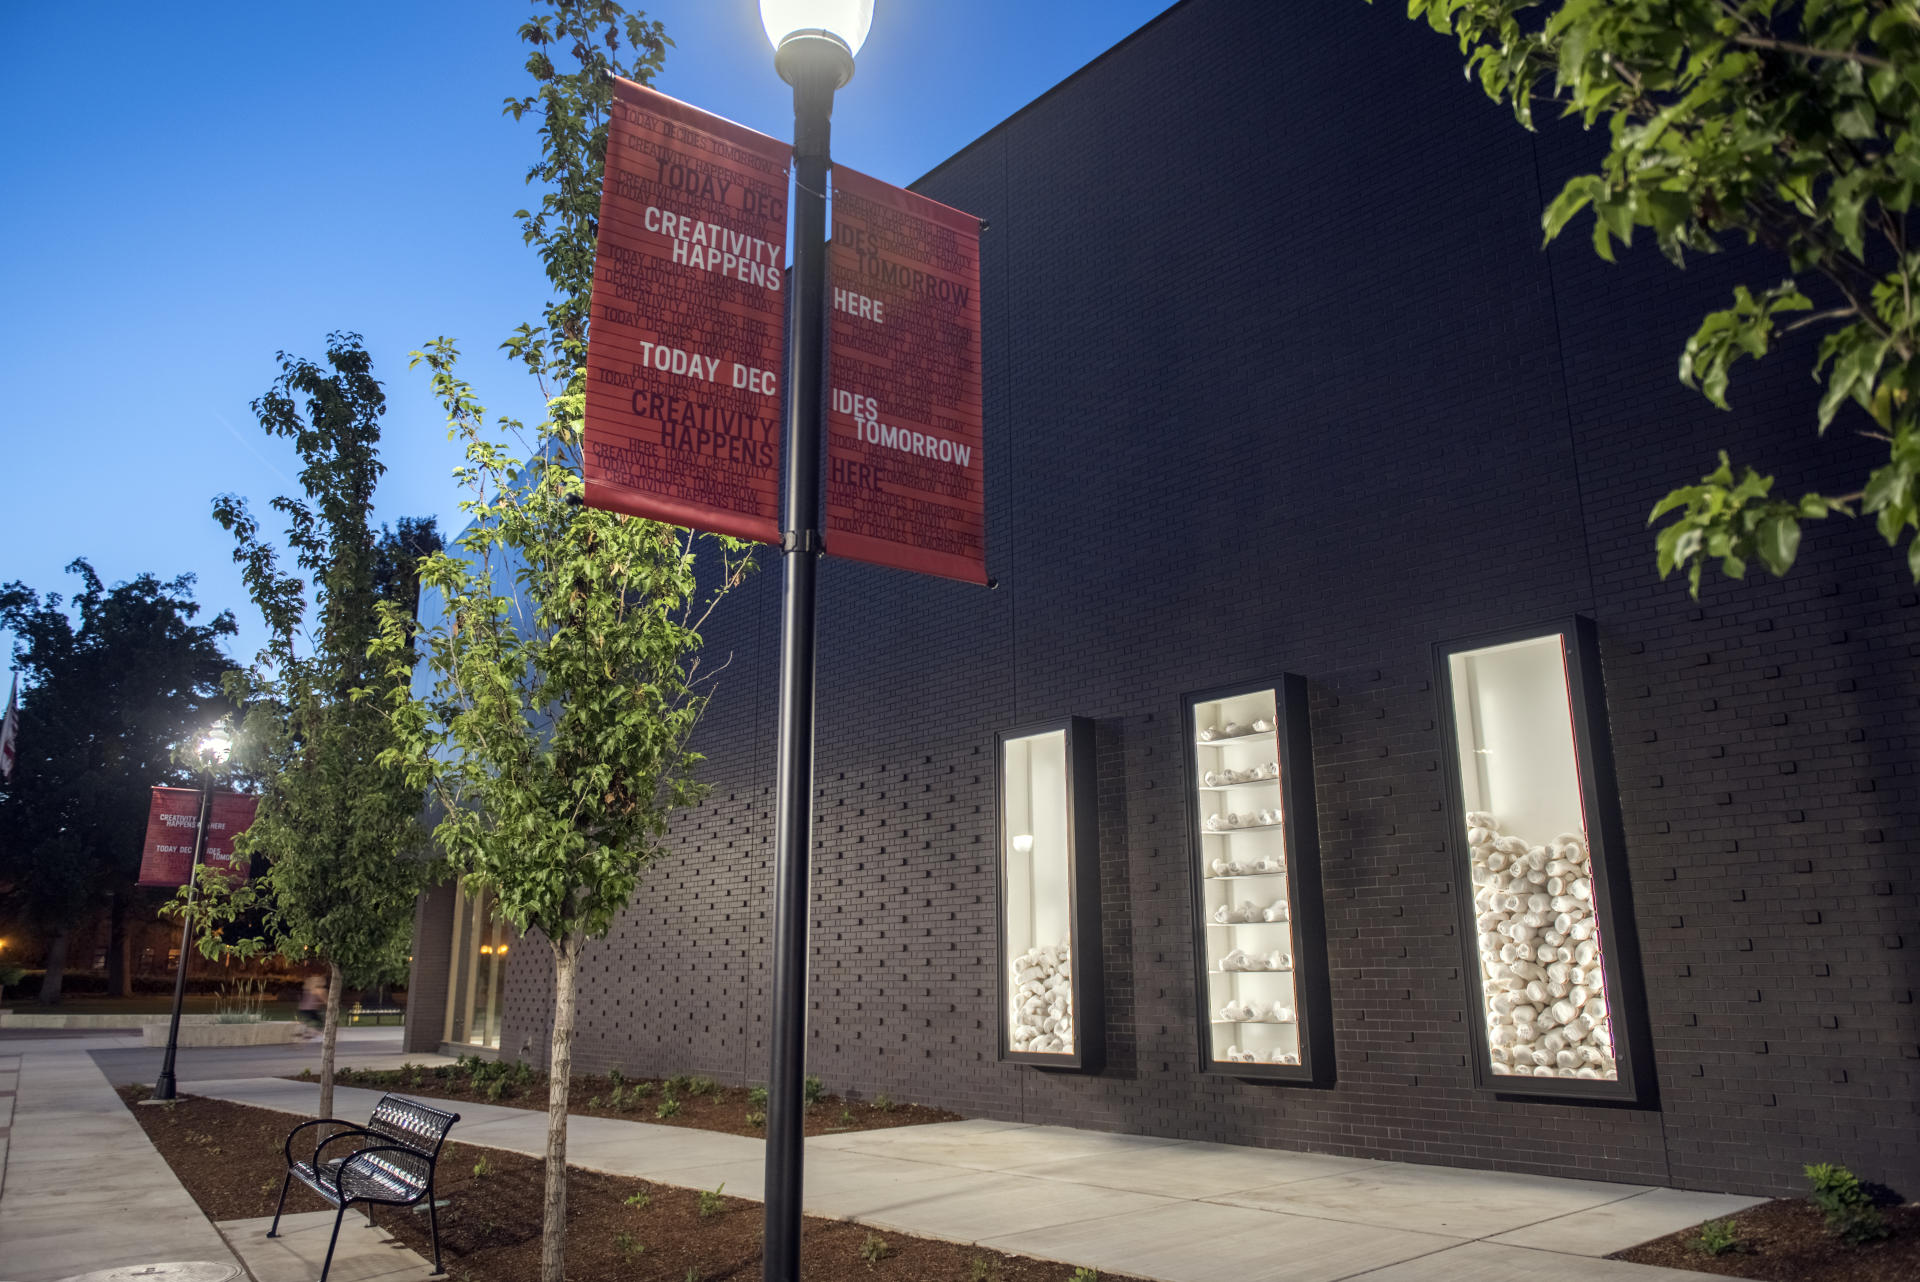 Creativity happens here, with our new Arts and Humanities Building anchoring The Arts District formed by the performance spaces in Laxson Auditorium and the Performing Arts Center.